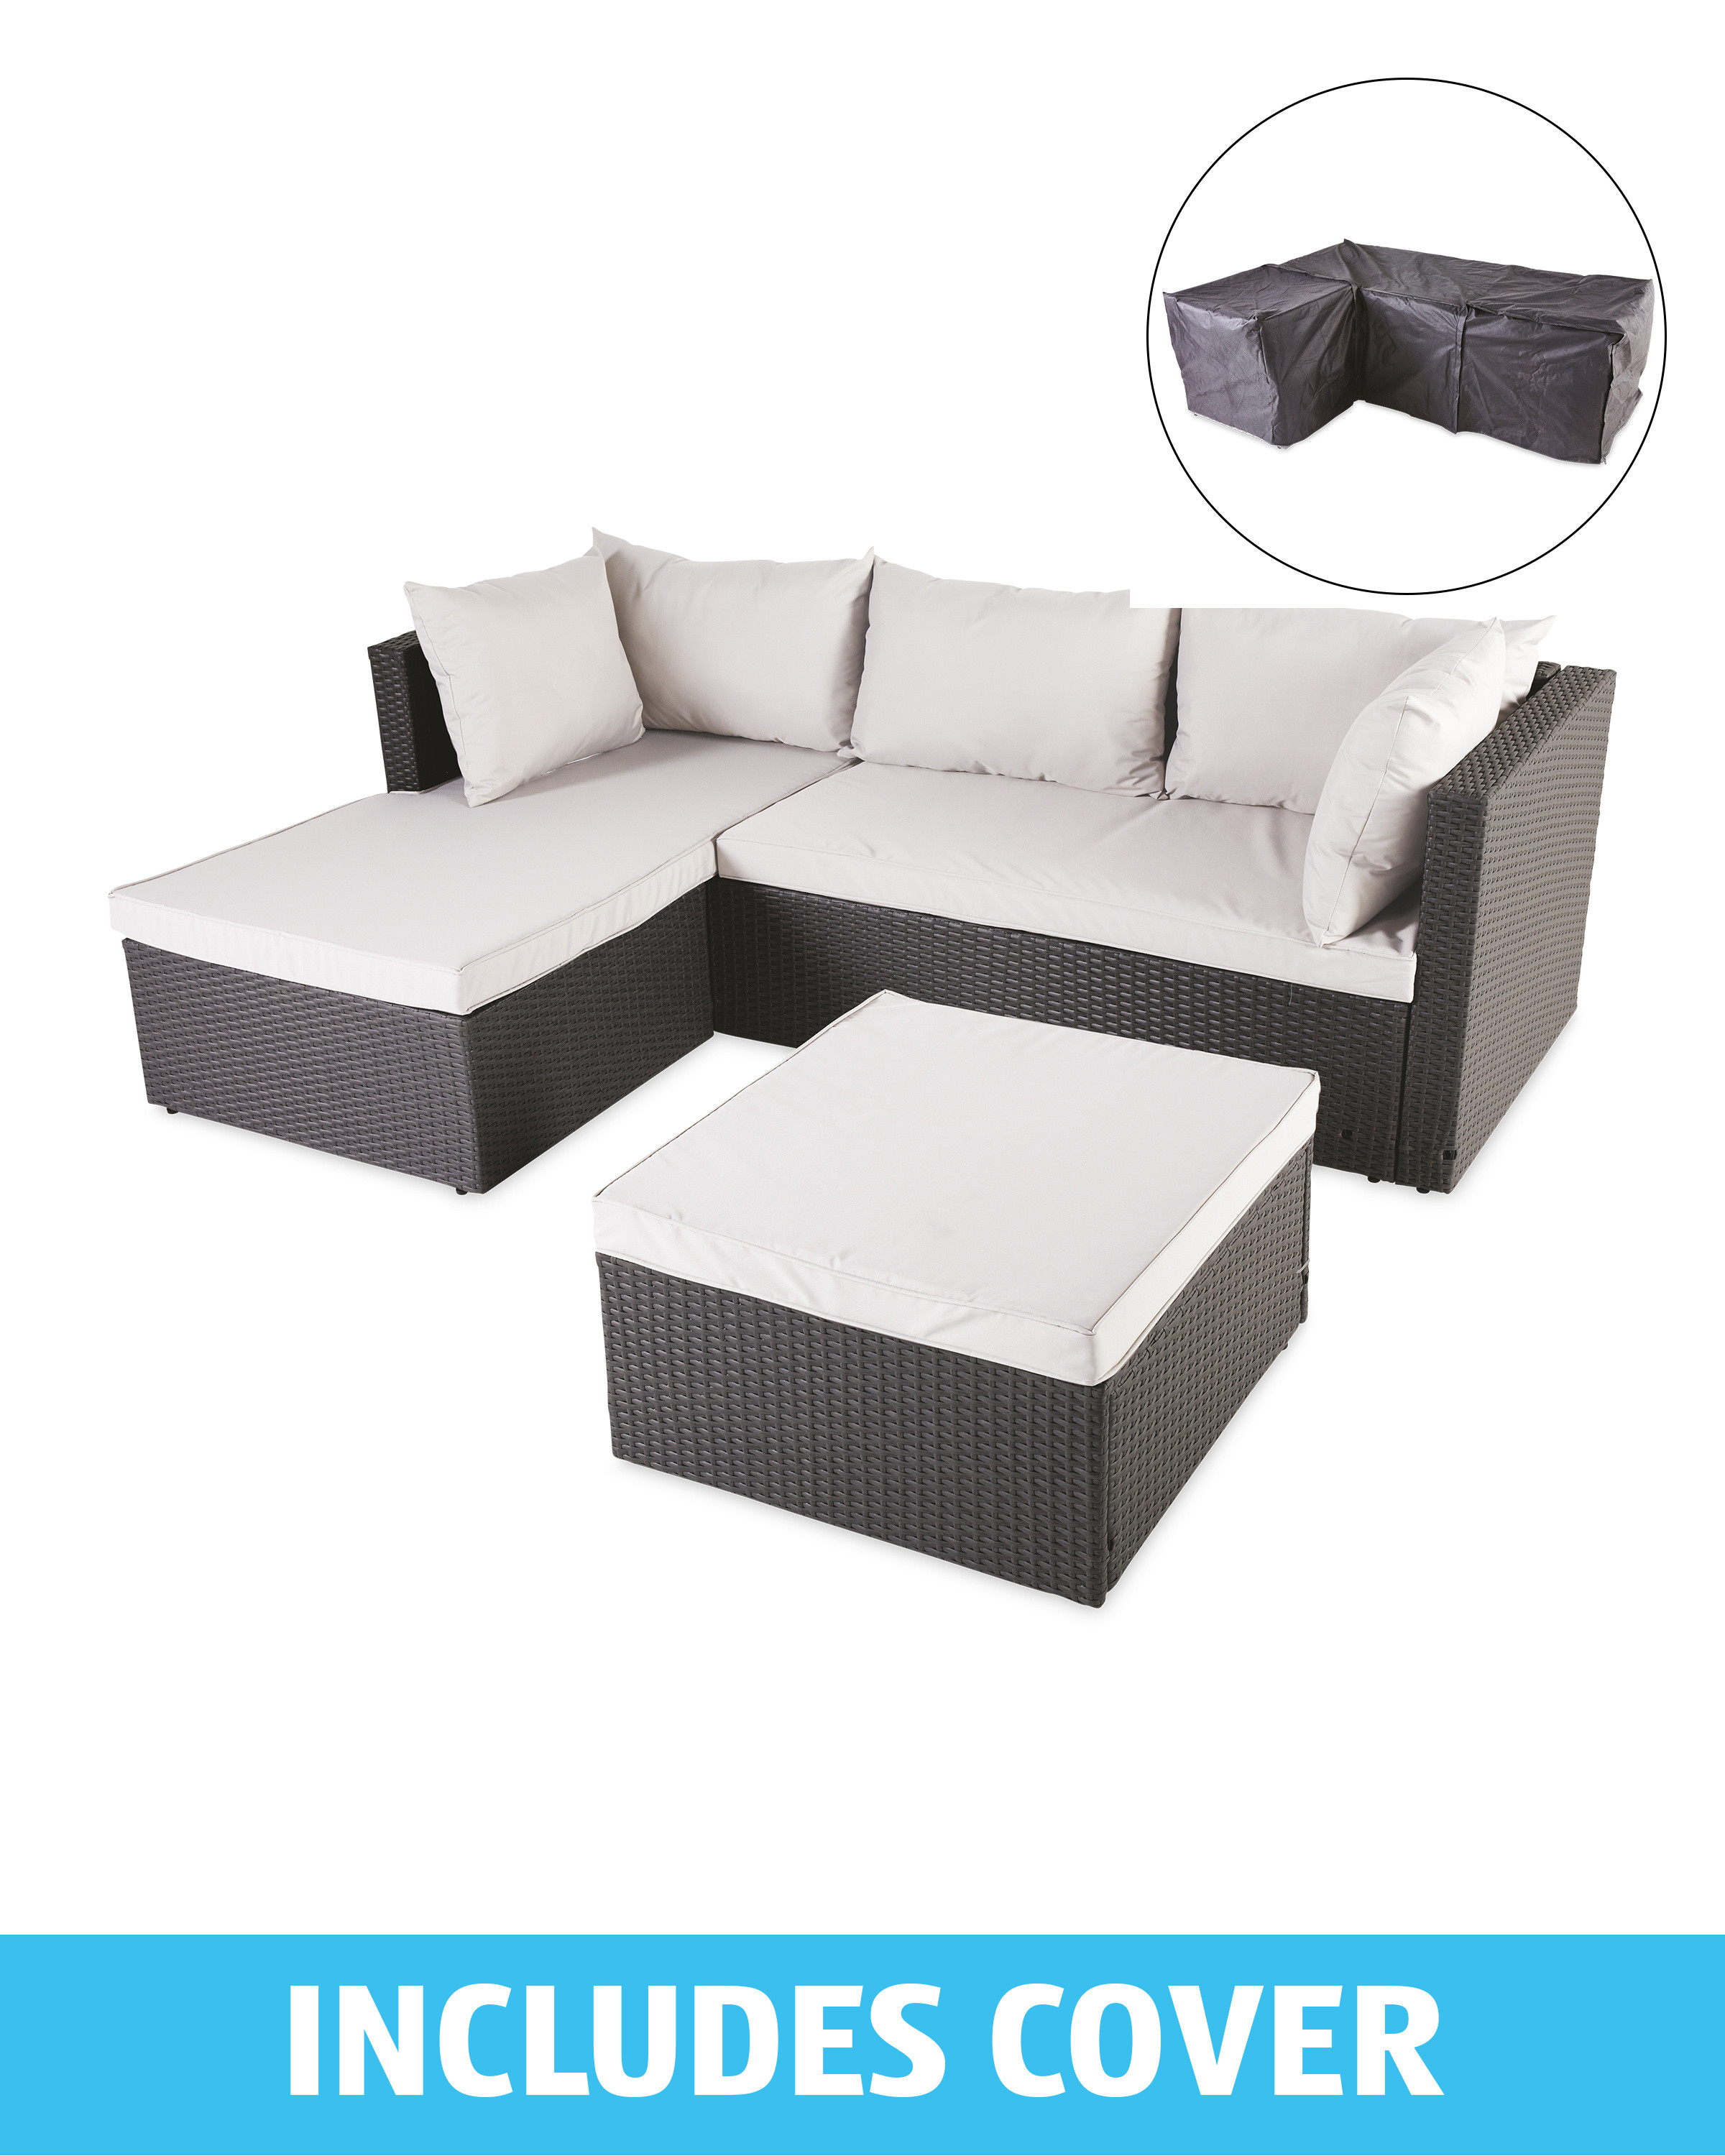 Anthracite Rattan Corner Sofa Cover Aldi Uk